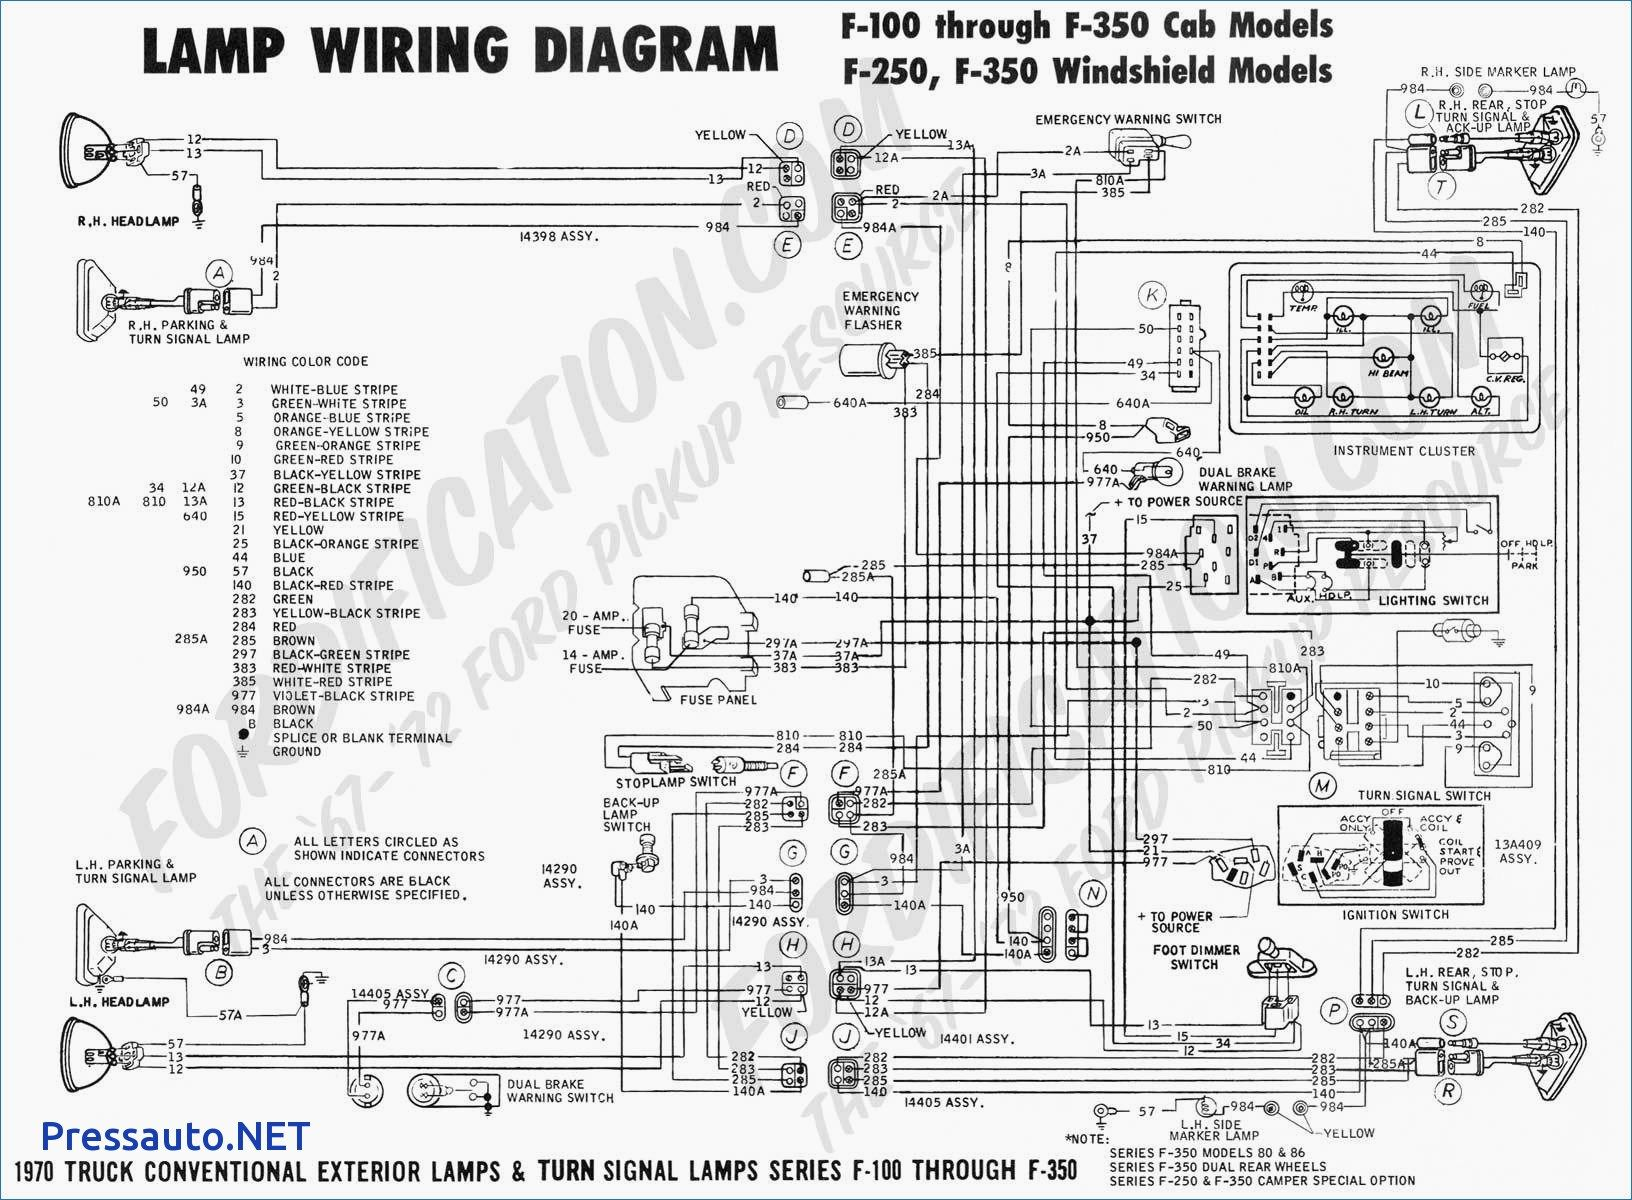 2002 F350 Turn Signal Wiring Diagram Diagrams Schematics Inside Ford F250 |  Trailer wiring diagram, Electrical diagram, Electrical wiring diagram | 2002 F250 Diesel Wiring Diagram |  | Pinterest